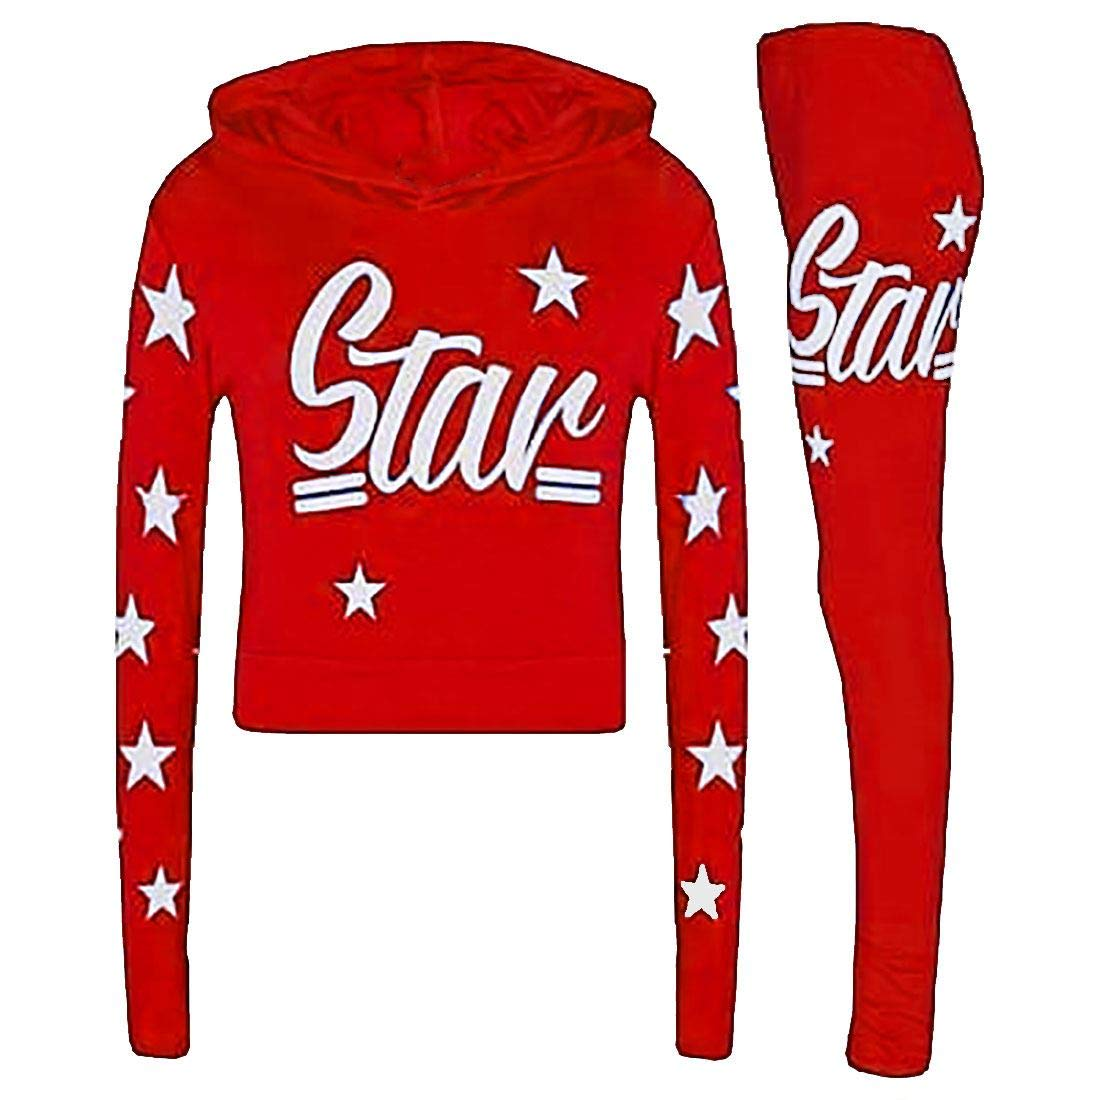 Rimi Hanger Children Fancy Star Printed Jogging Tracksuit